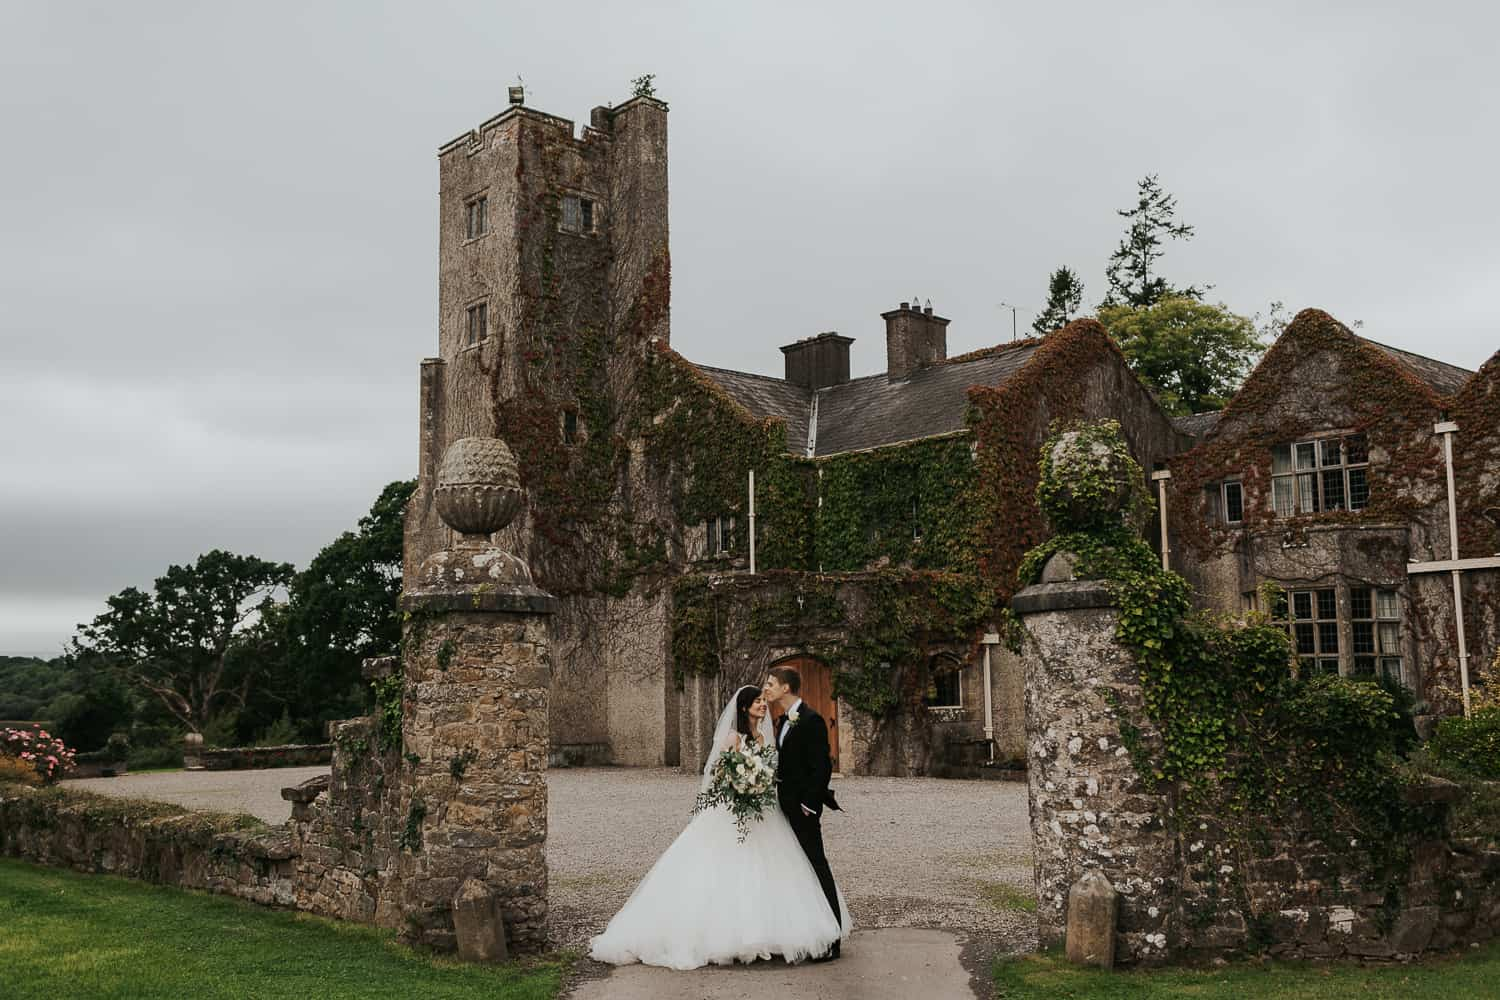 Micro wedding location with castle ireland